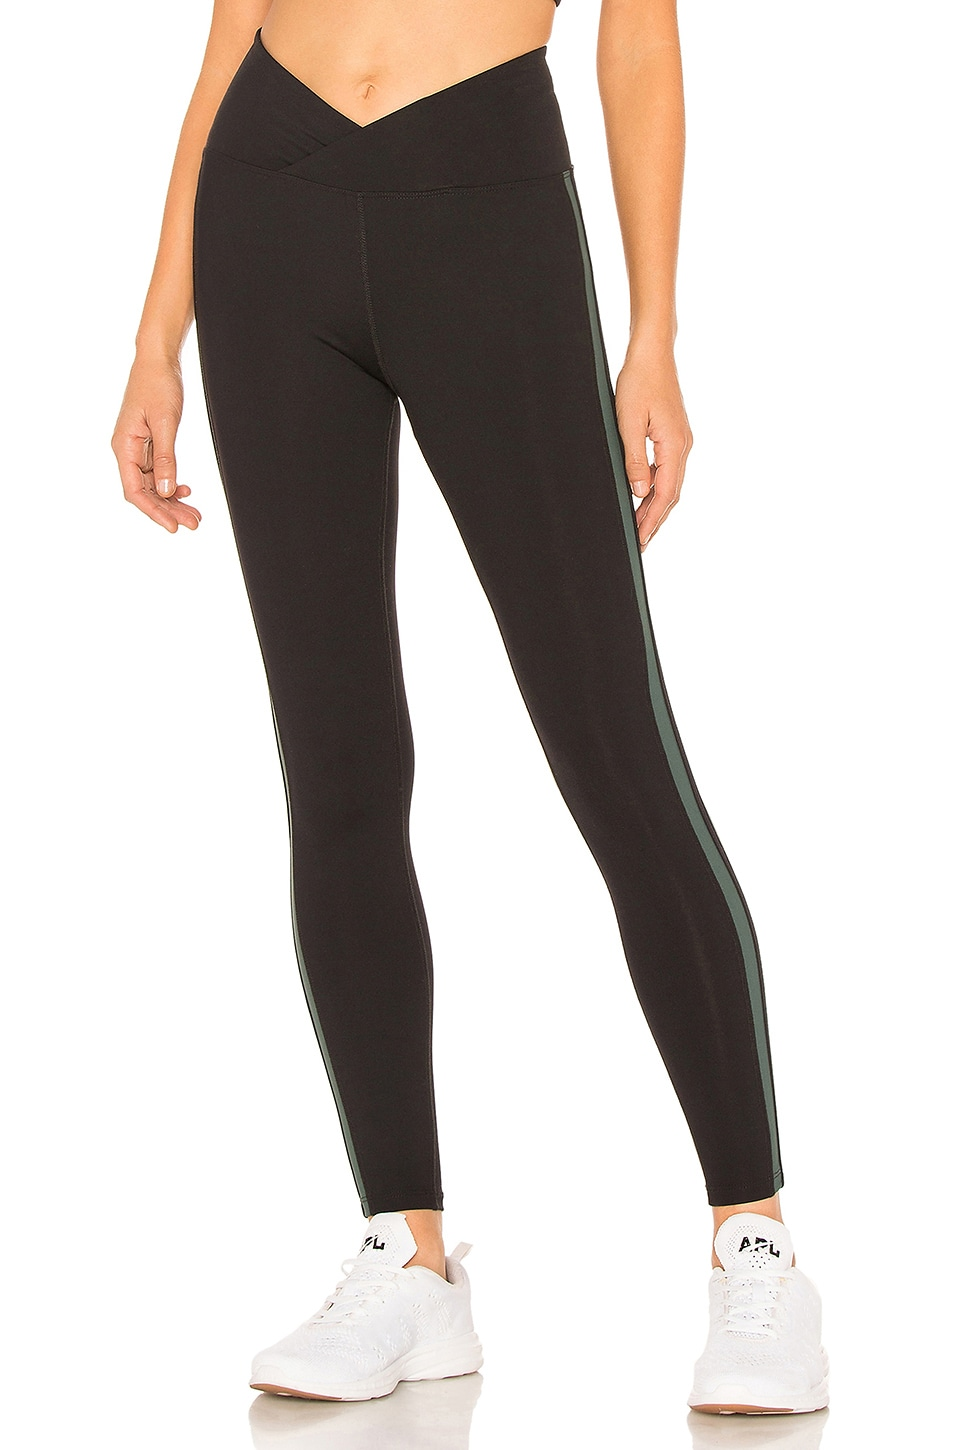 YEAR OF OURS Racer Legging in Black